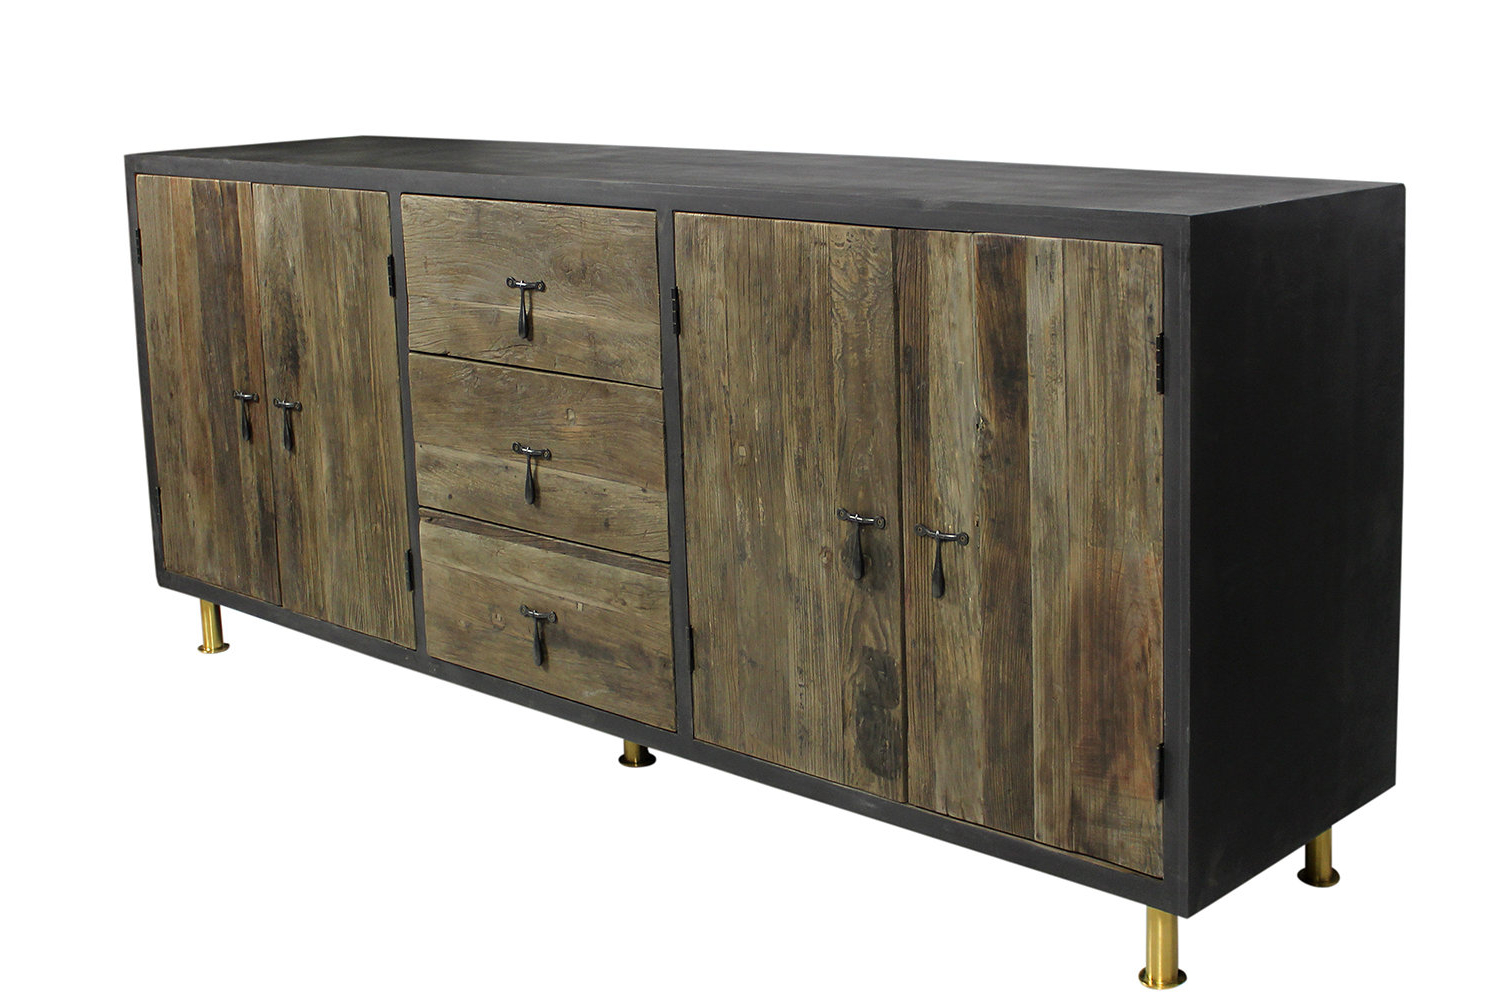 Keith 4 Door Credenza | Wayfair Inside Kieth 4 Door Credenzas (View 6 of 20)